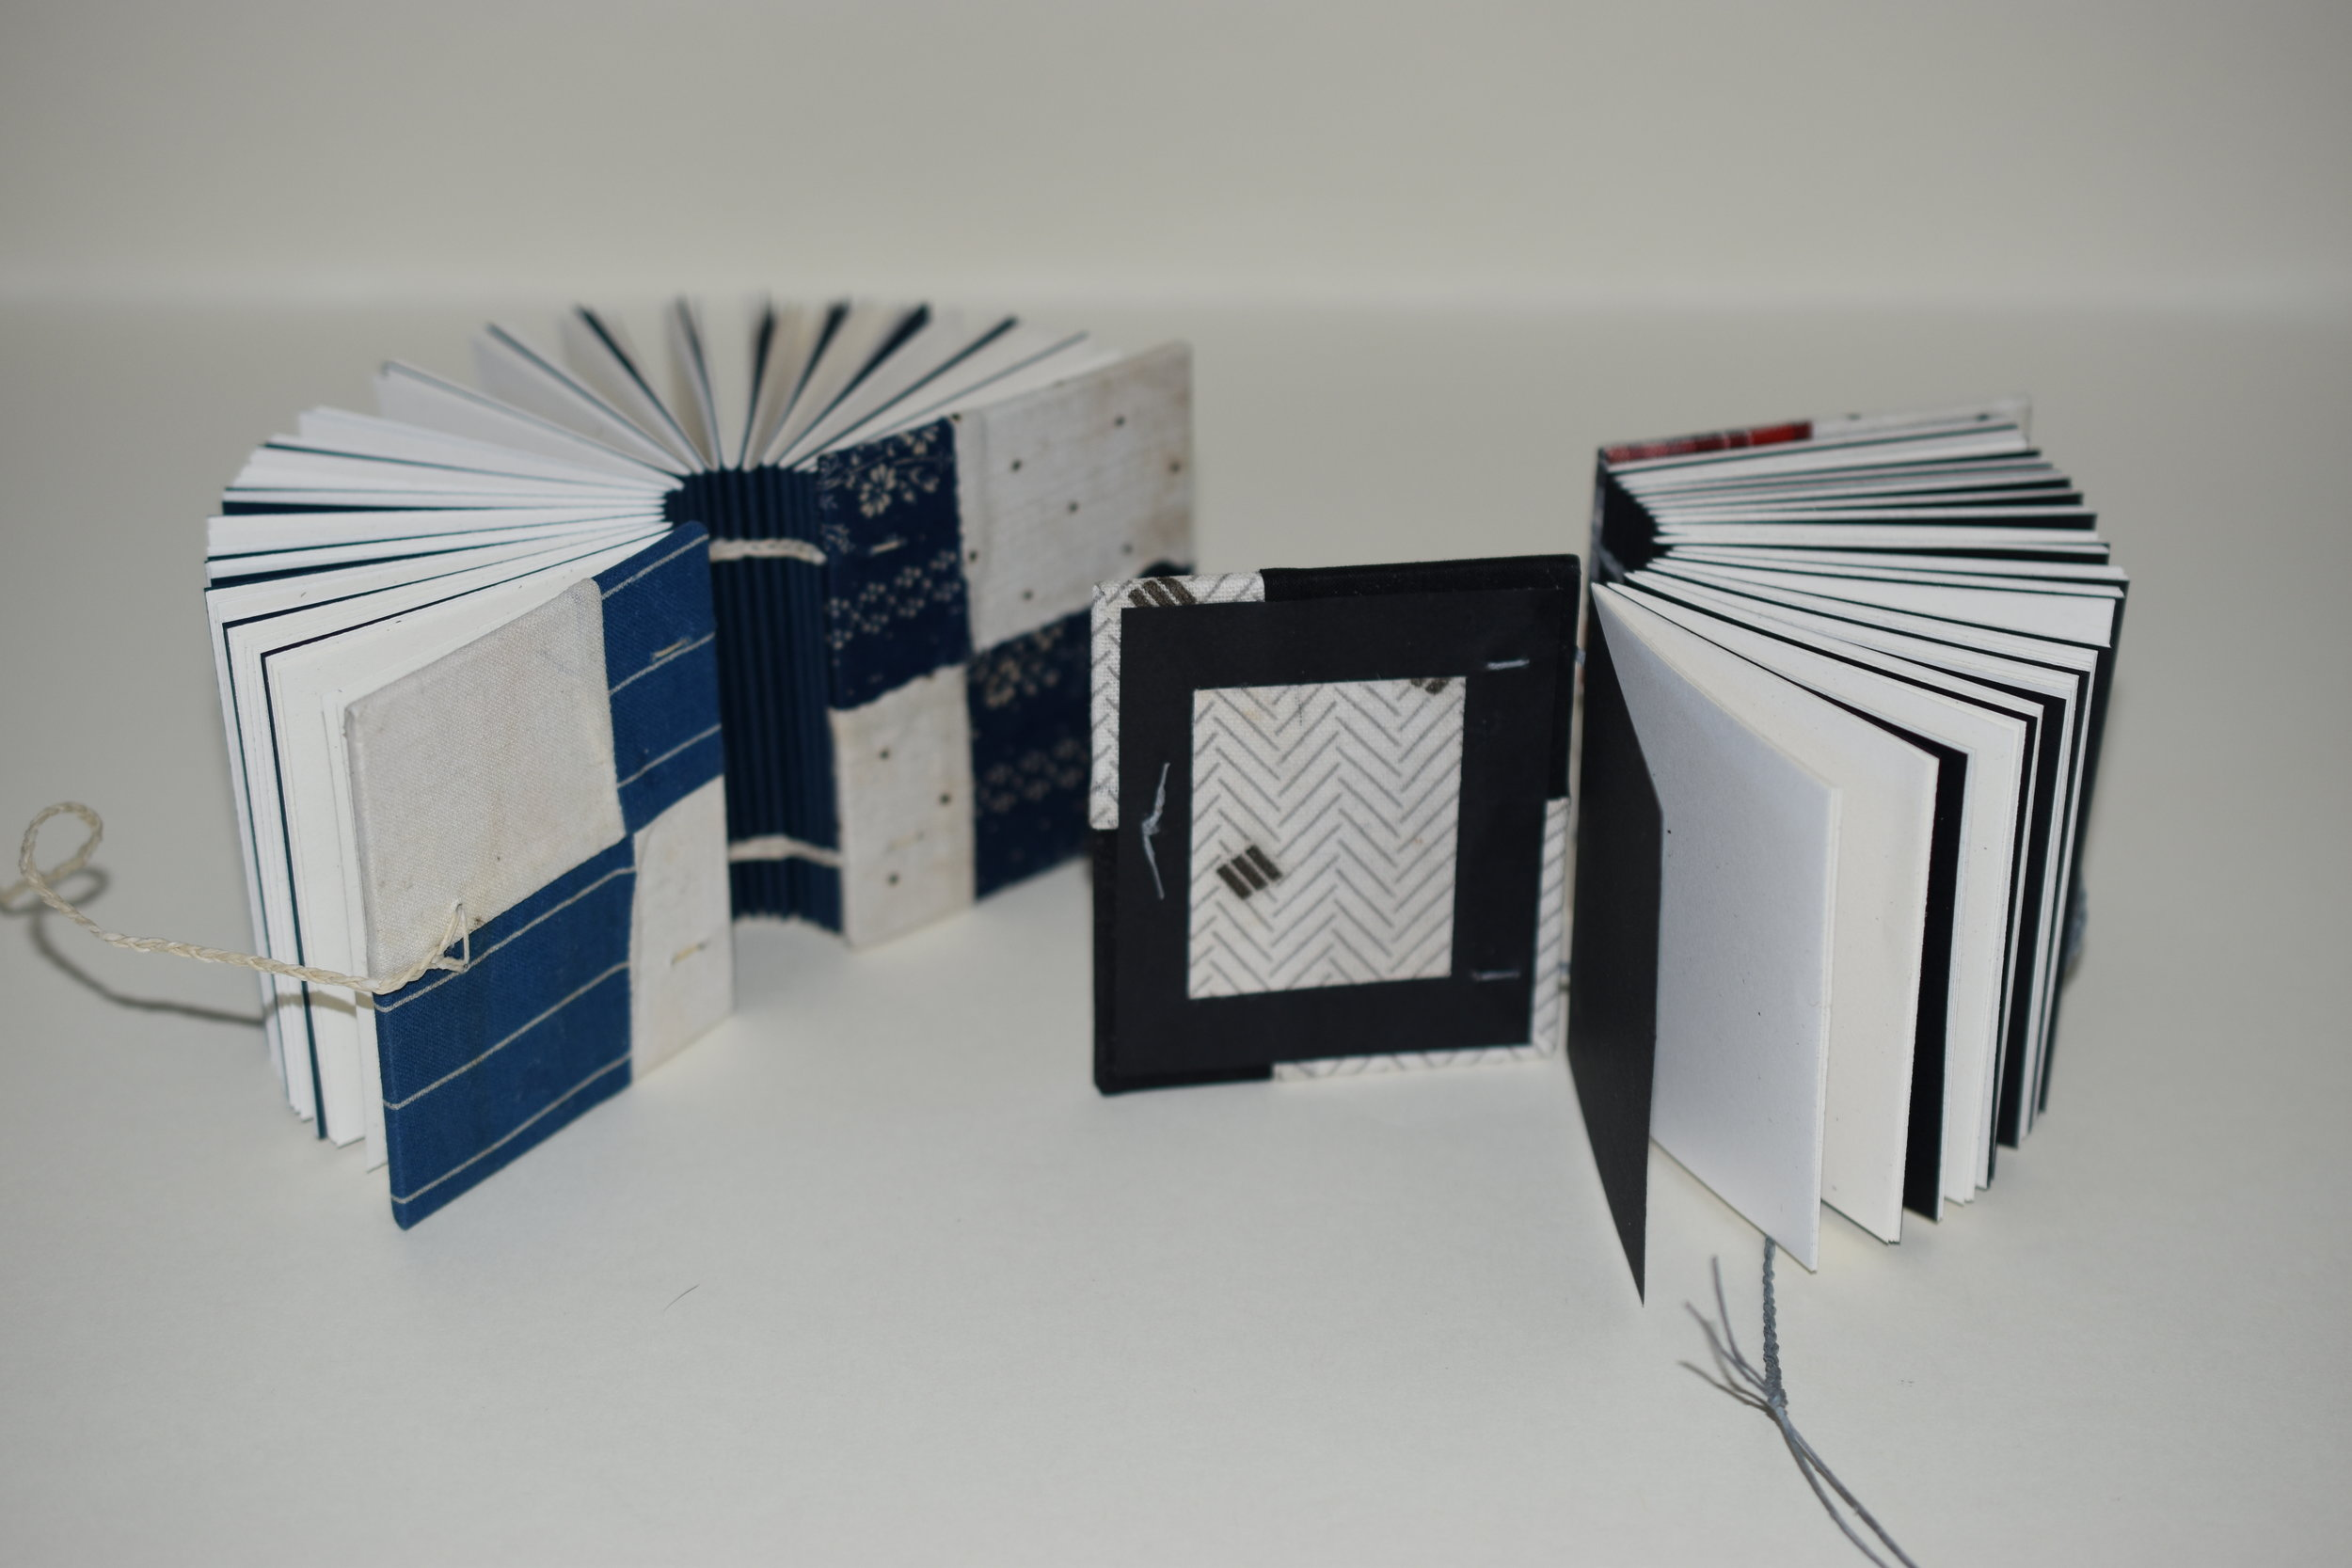 I added a bit of the fabric to the inner front covers, an element of surprise when opening and handling the books.